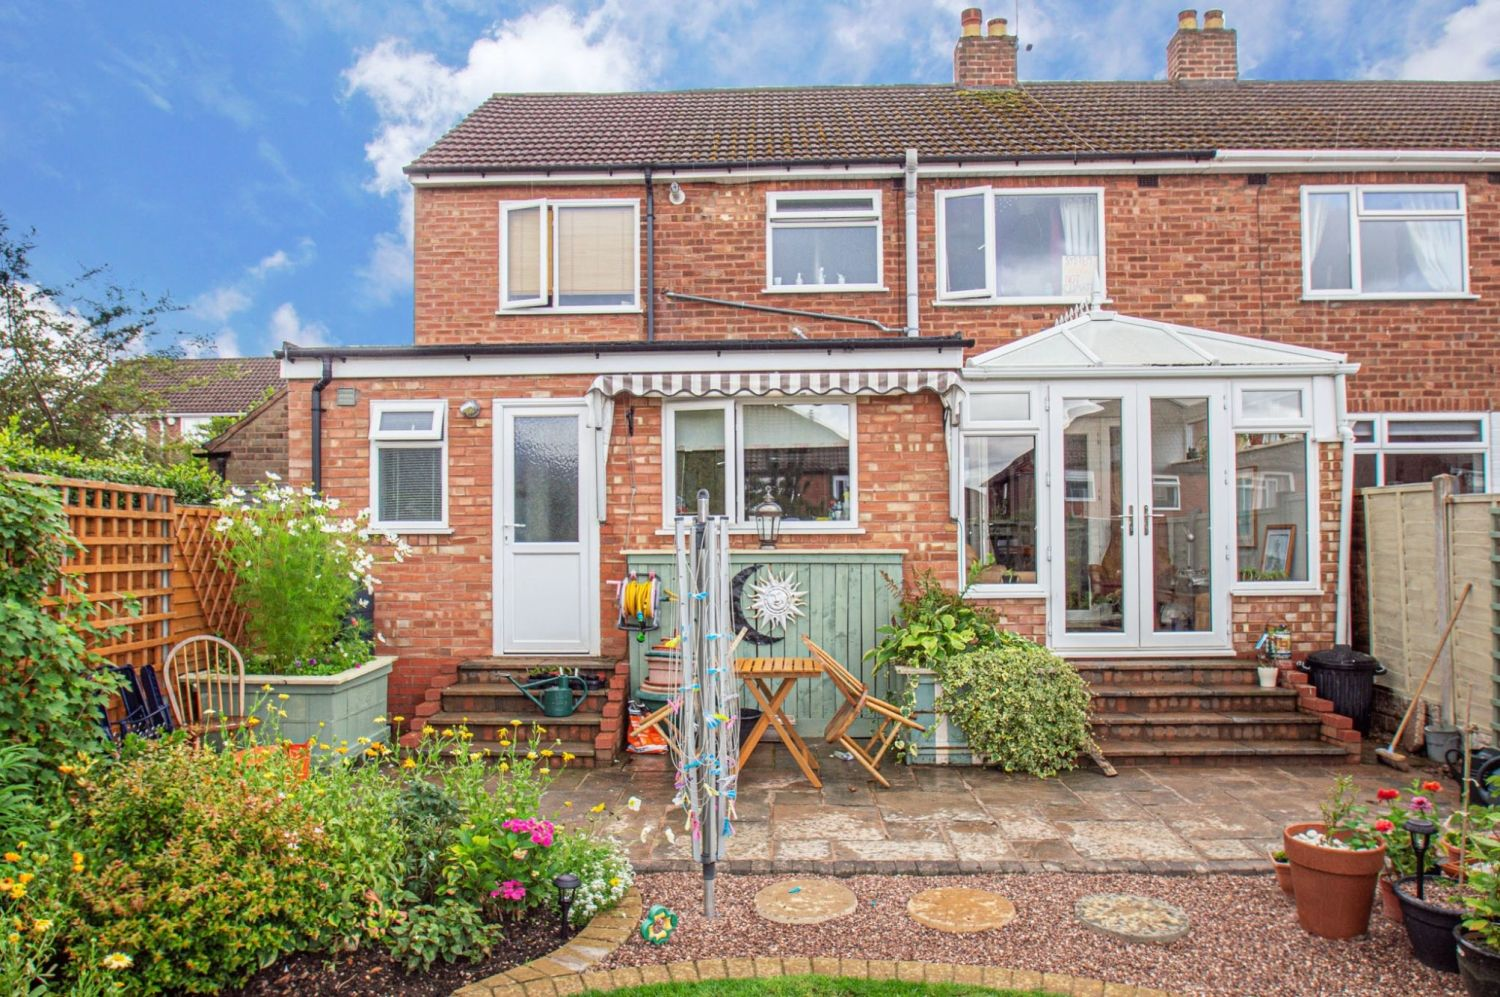 4 bed semi-detached for sale in Wheatcroft Close, Halesowen  - Property Image 18